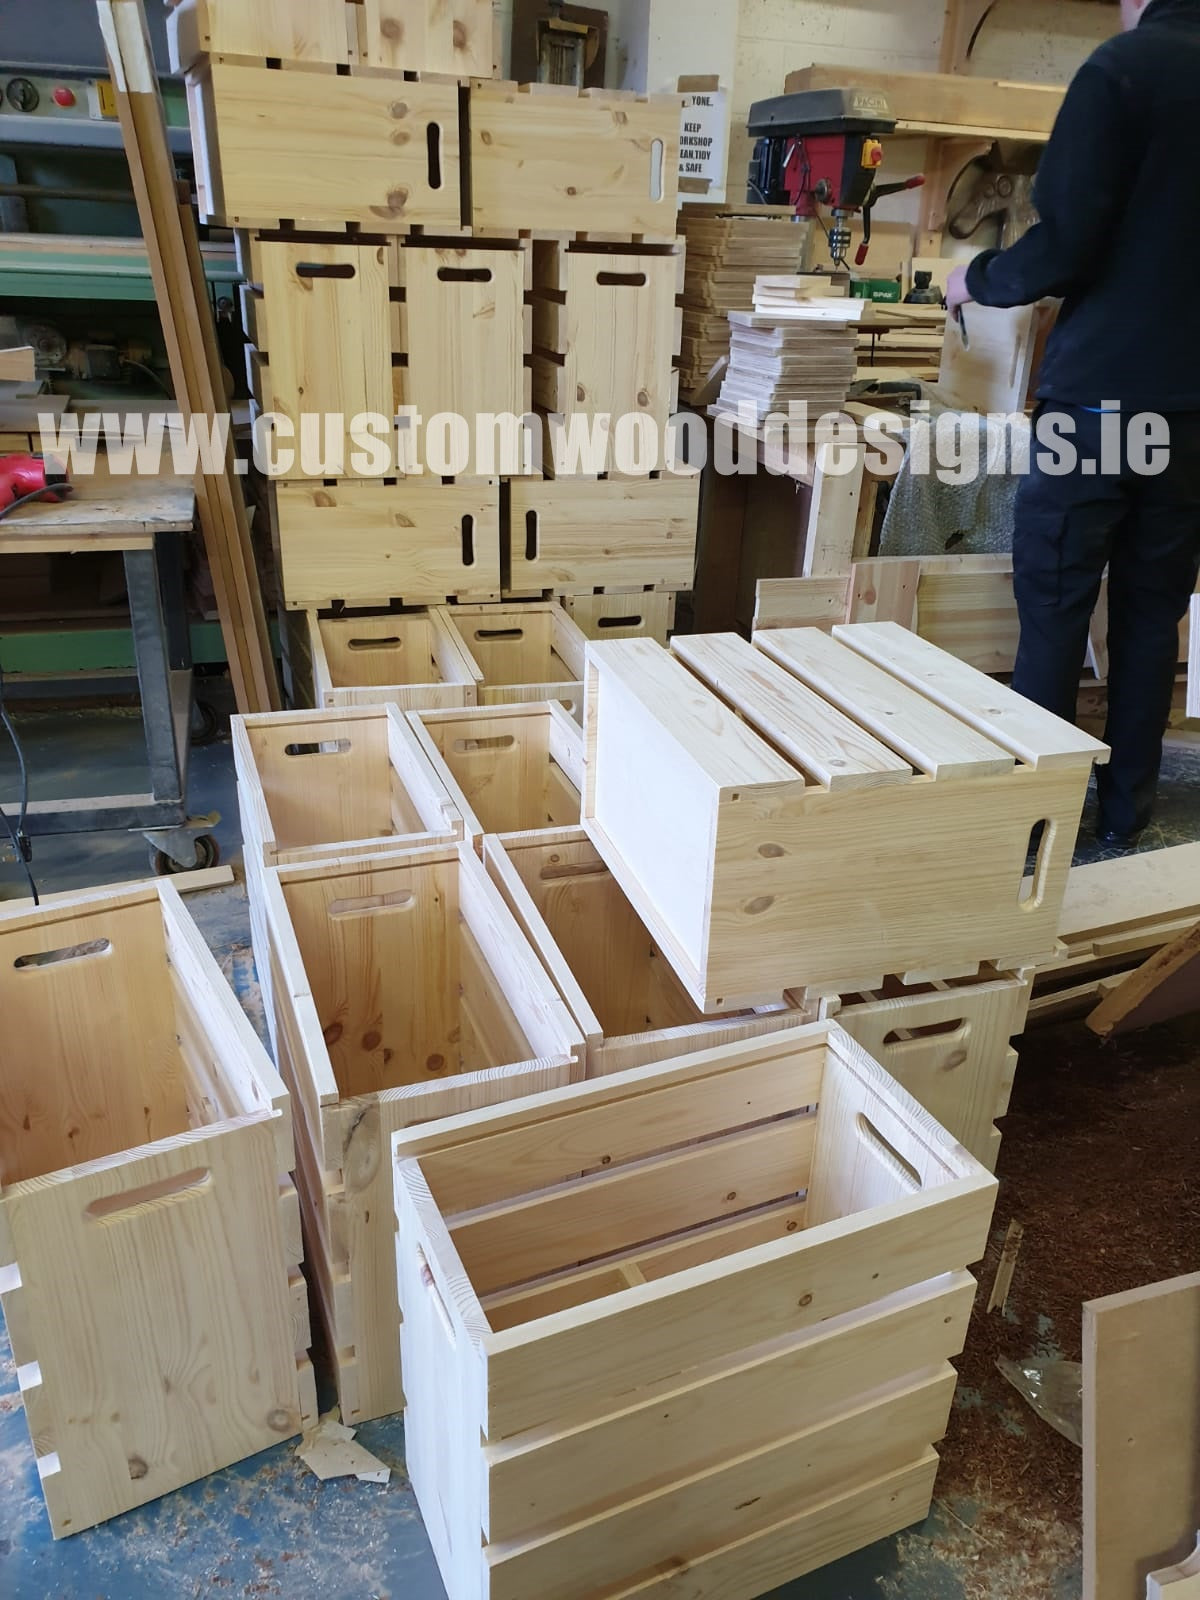 Eighty 9 Tin holder crate box with lid sliding top box made in Ireland Custom Wood Designs Gary Byrne woodworking manufacturer dublin wholesale mass production coffe promotional branding   (7)